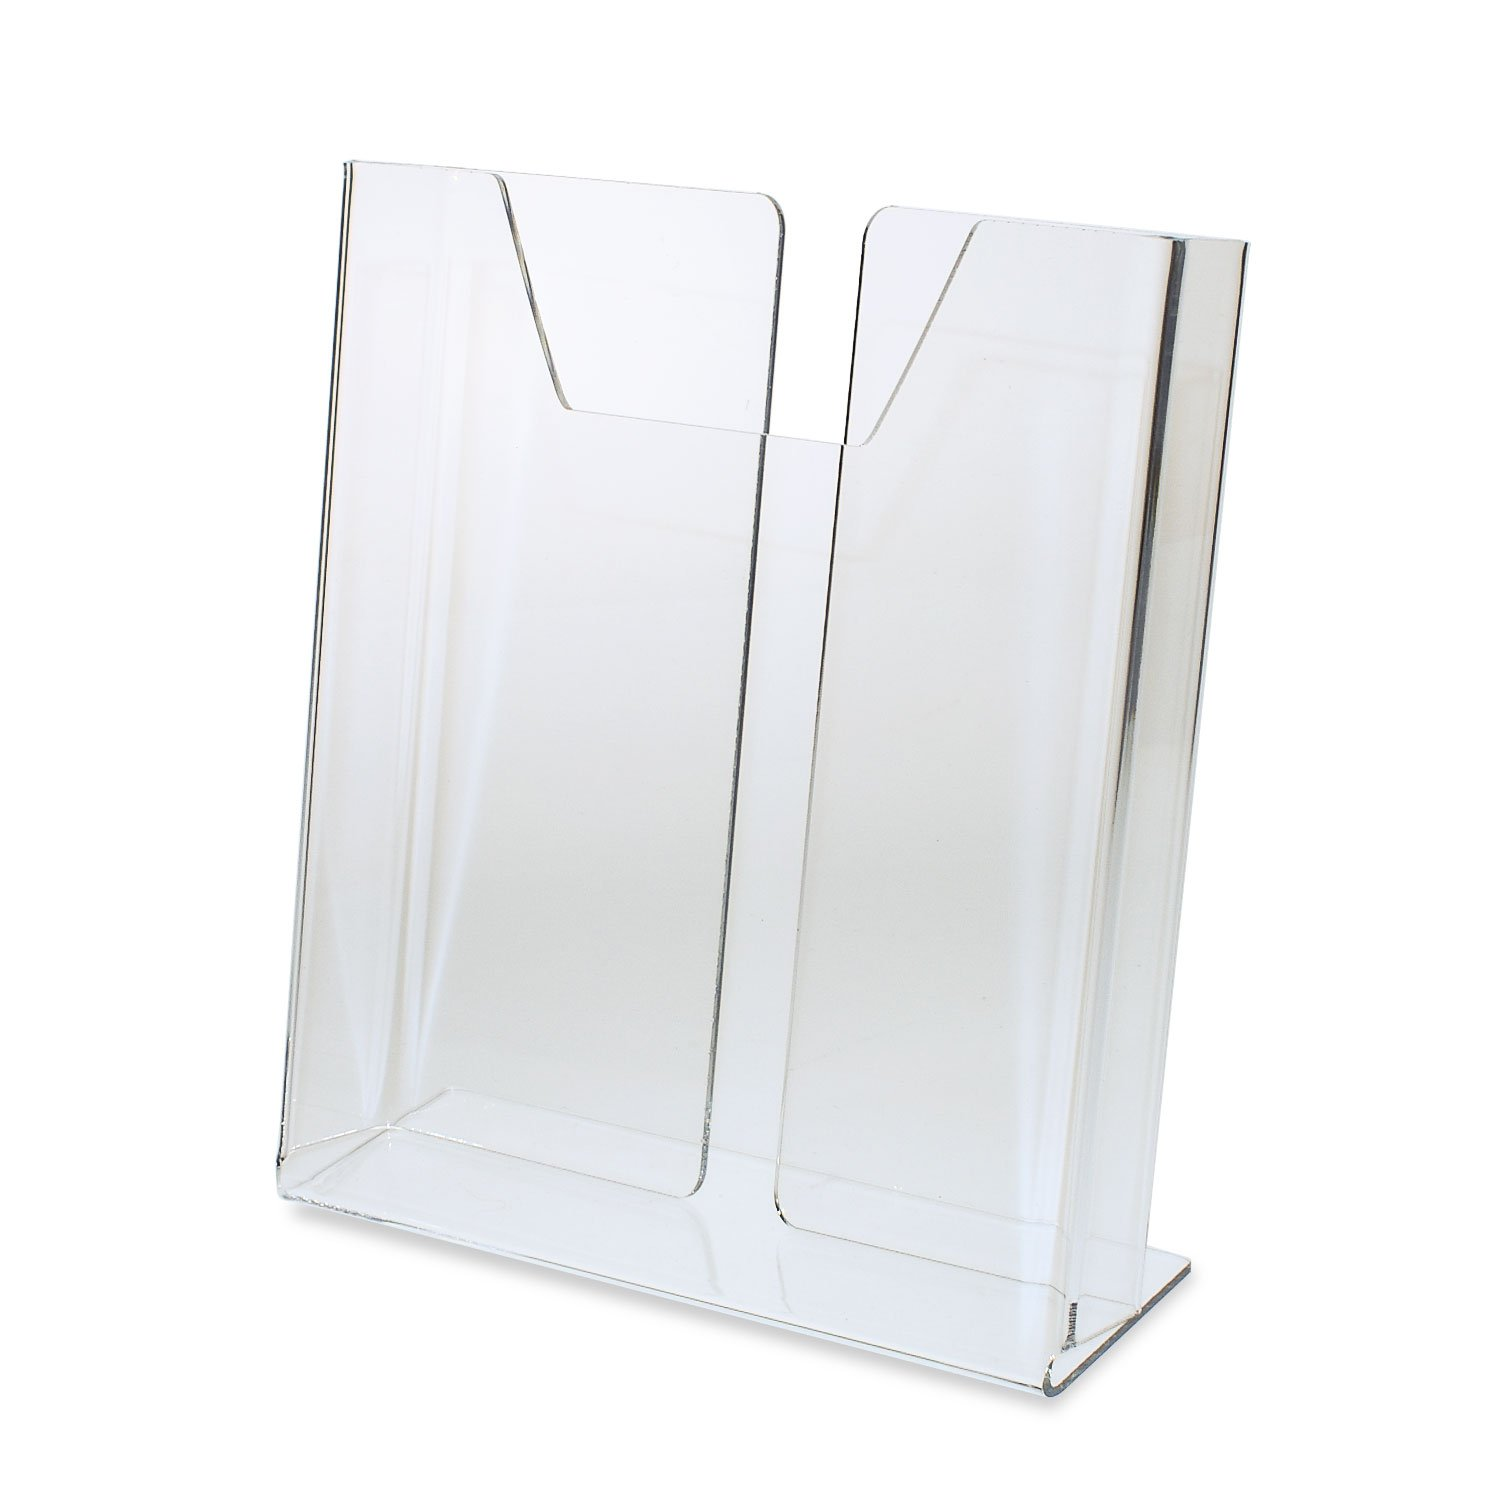 Source One Premium Counter Top TriFold 4-Inch Wide Acrylic Brochure Holder (6 Pack Deluxe)